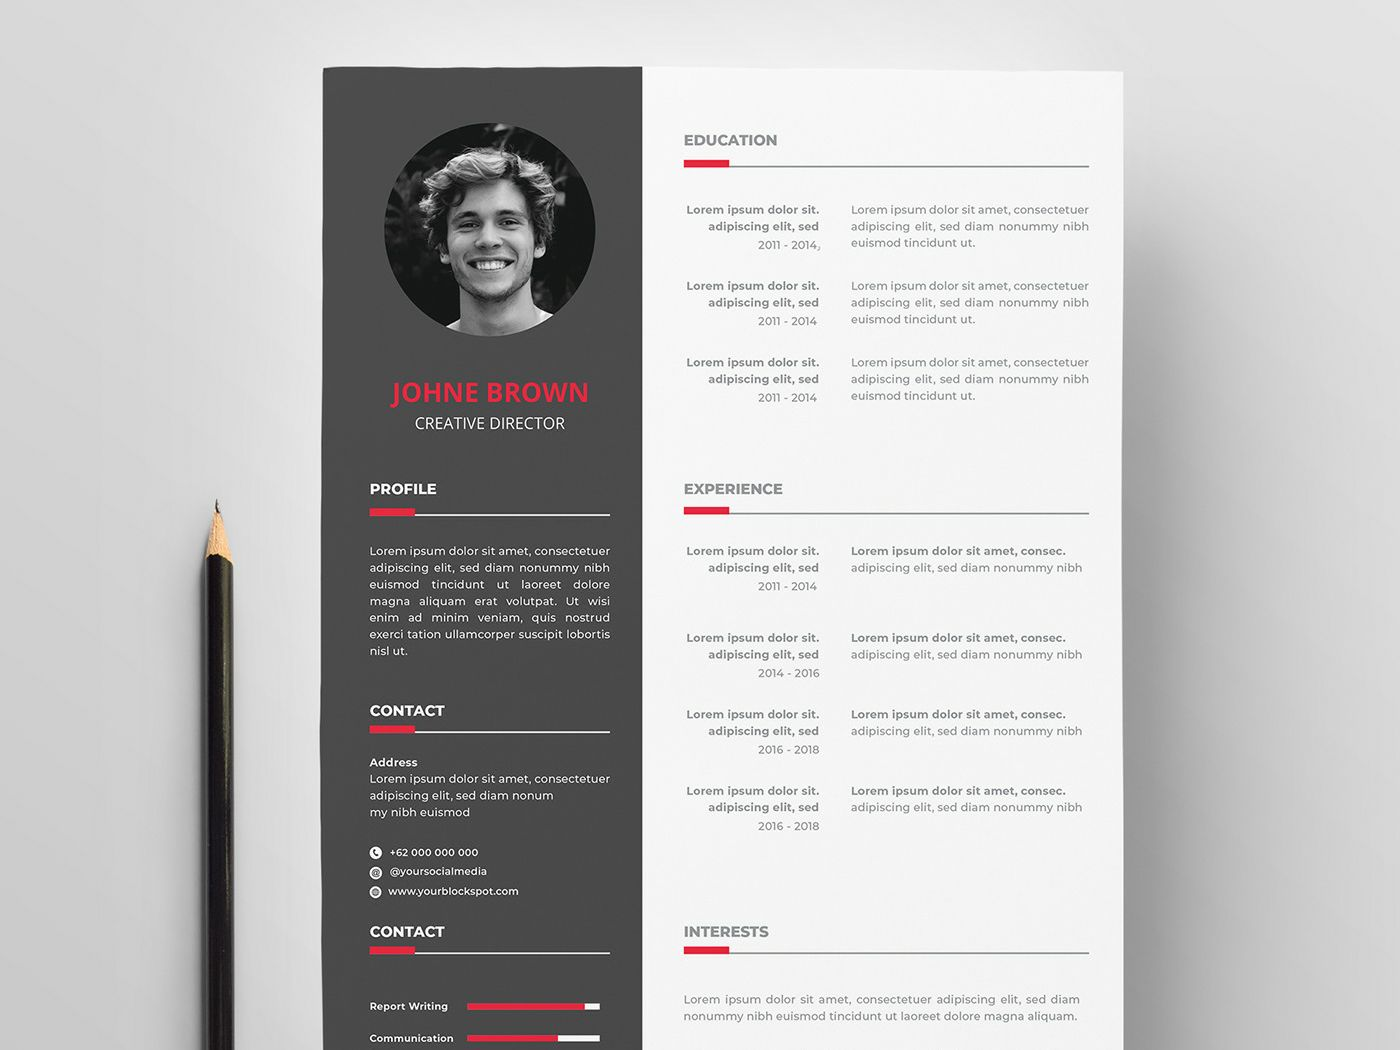 free vector resume template with creative design